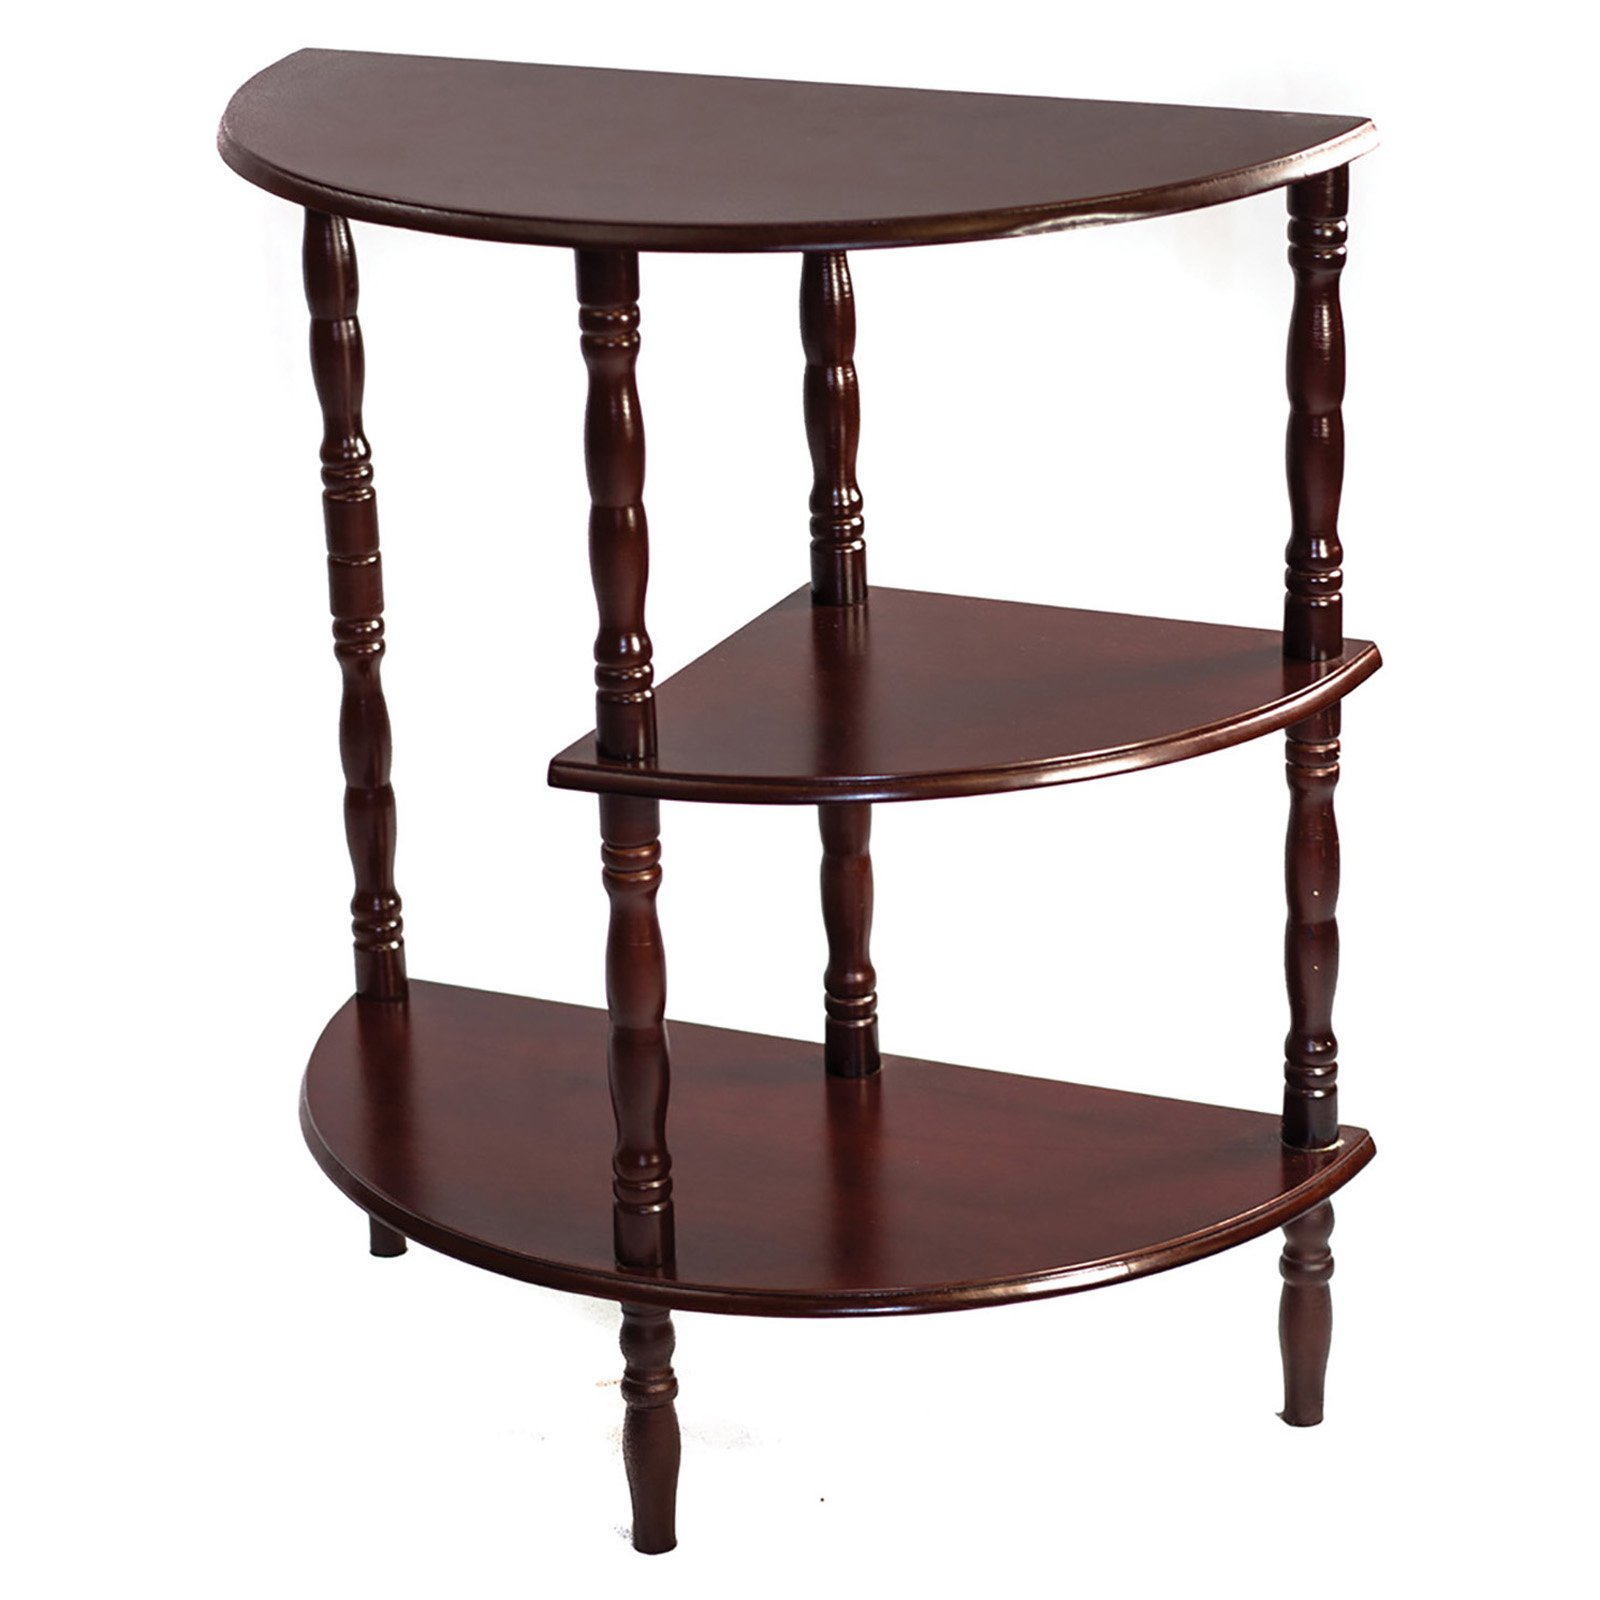 Home Source Industries Multi-Tiered Shelf Table